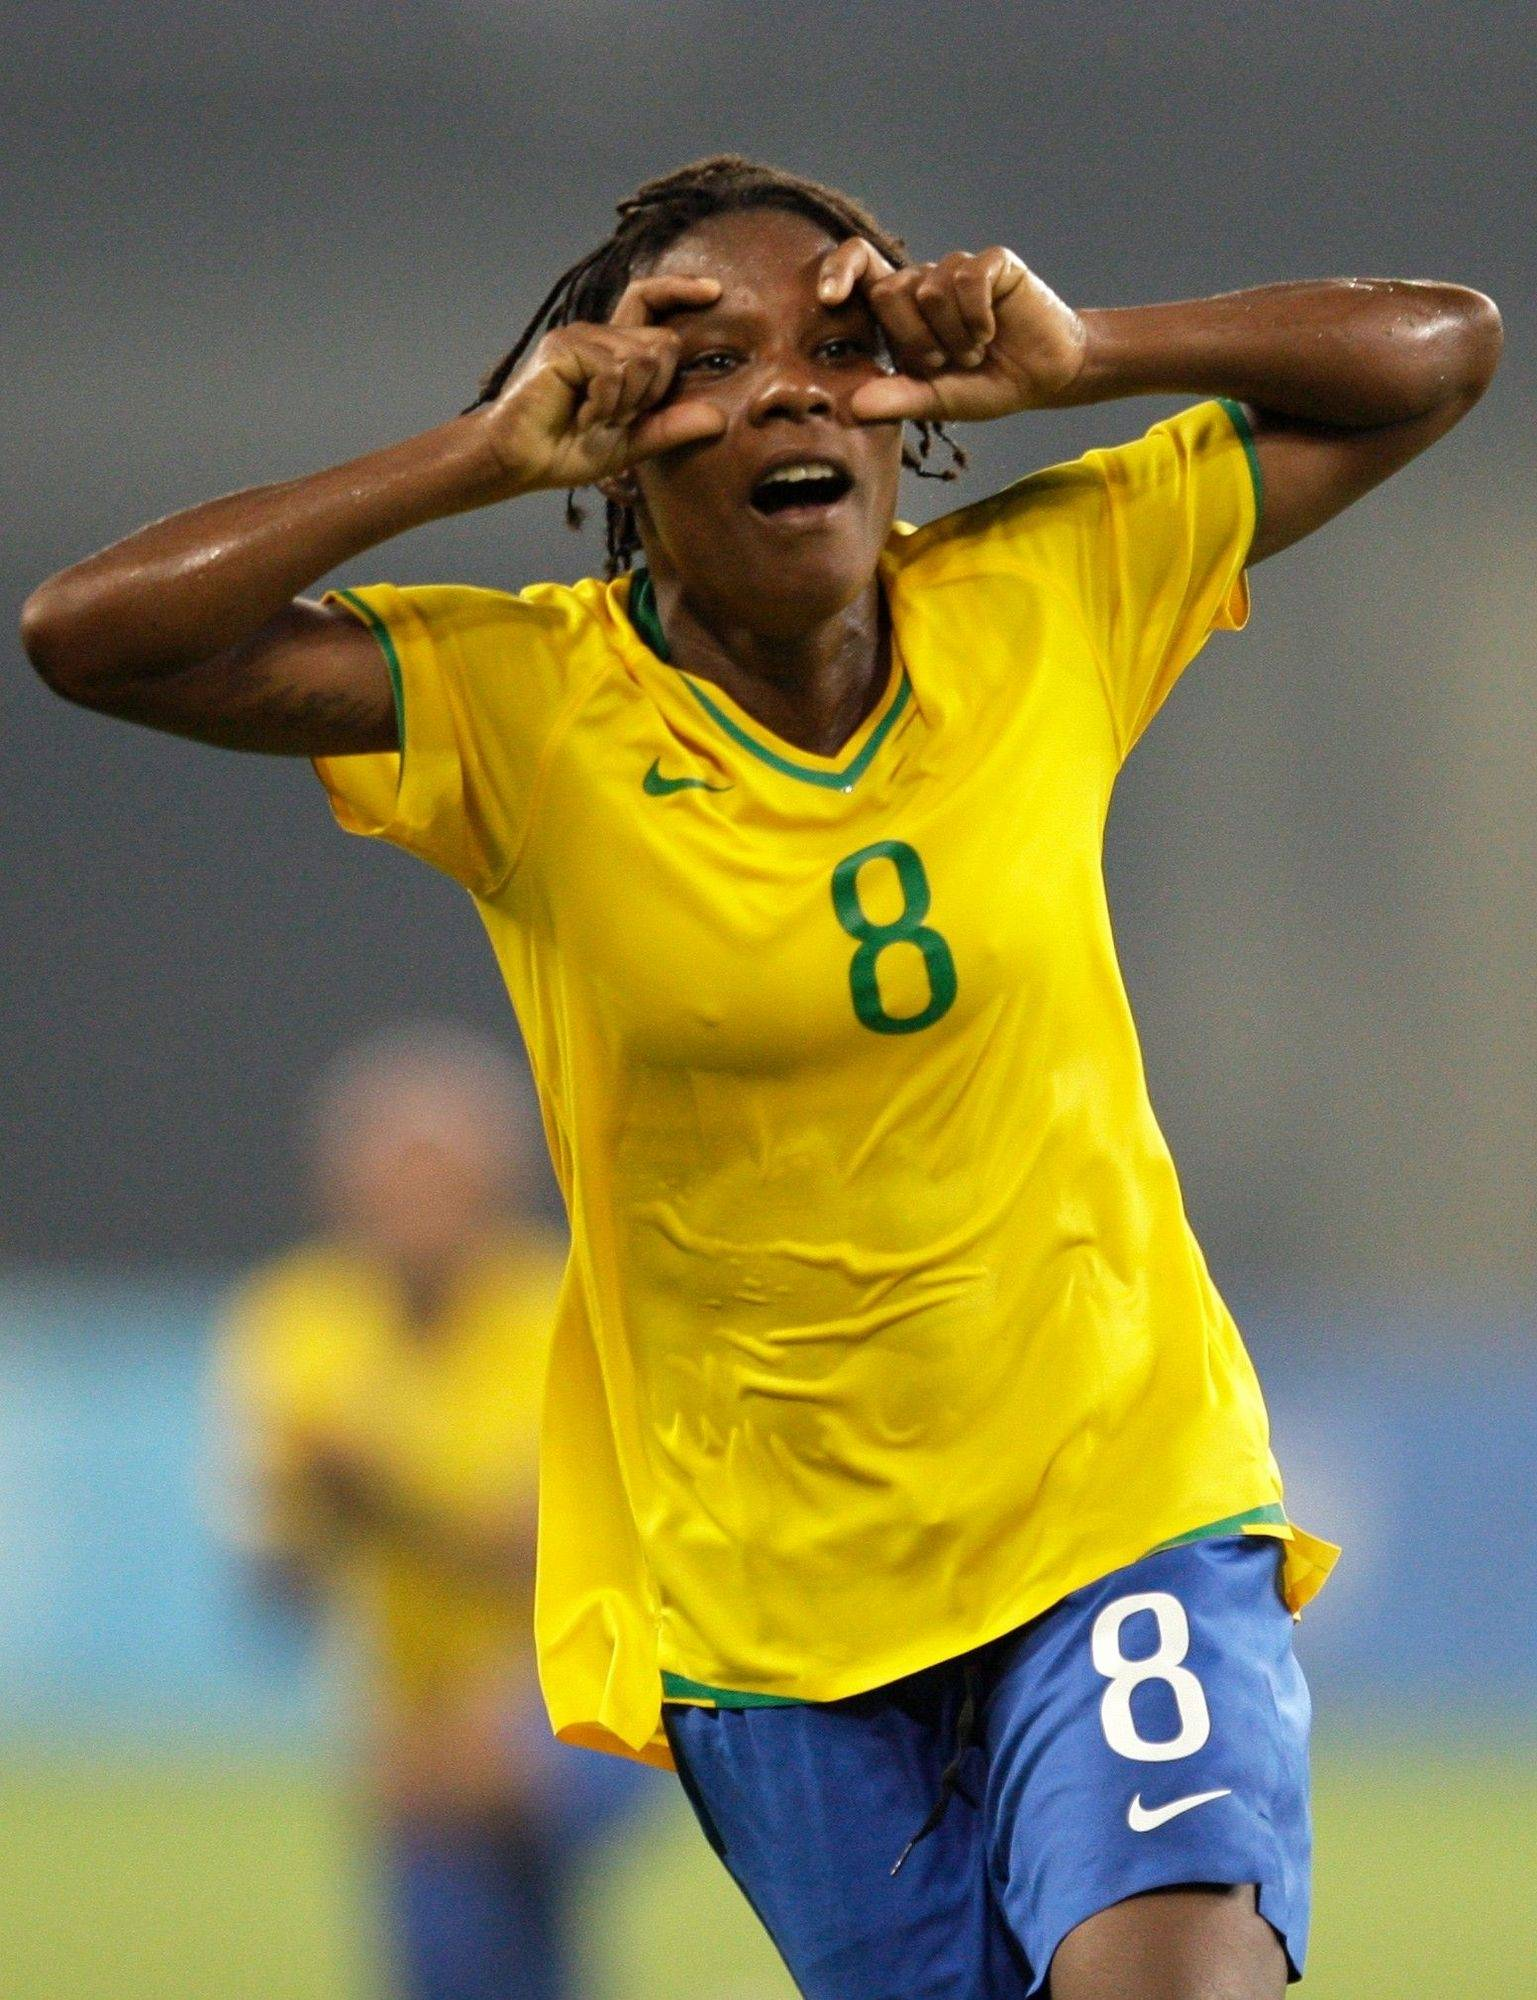 Brazil's Formiga celebrates after scoring a goal against Germany at the 2008 Beijing Olympics in Shanghai.